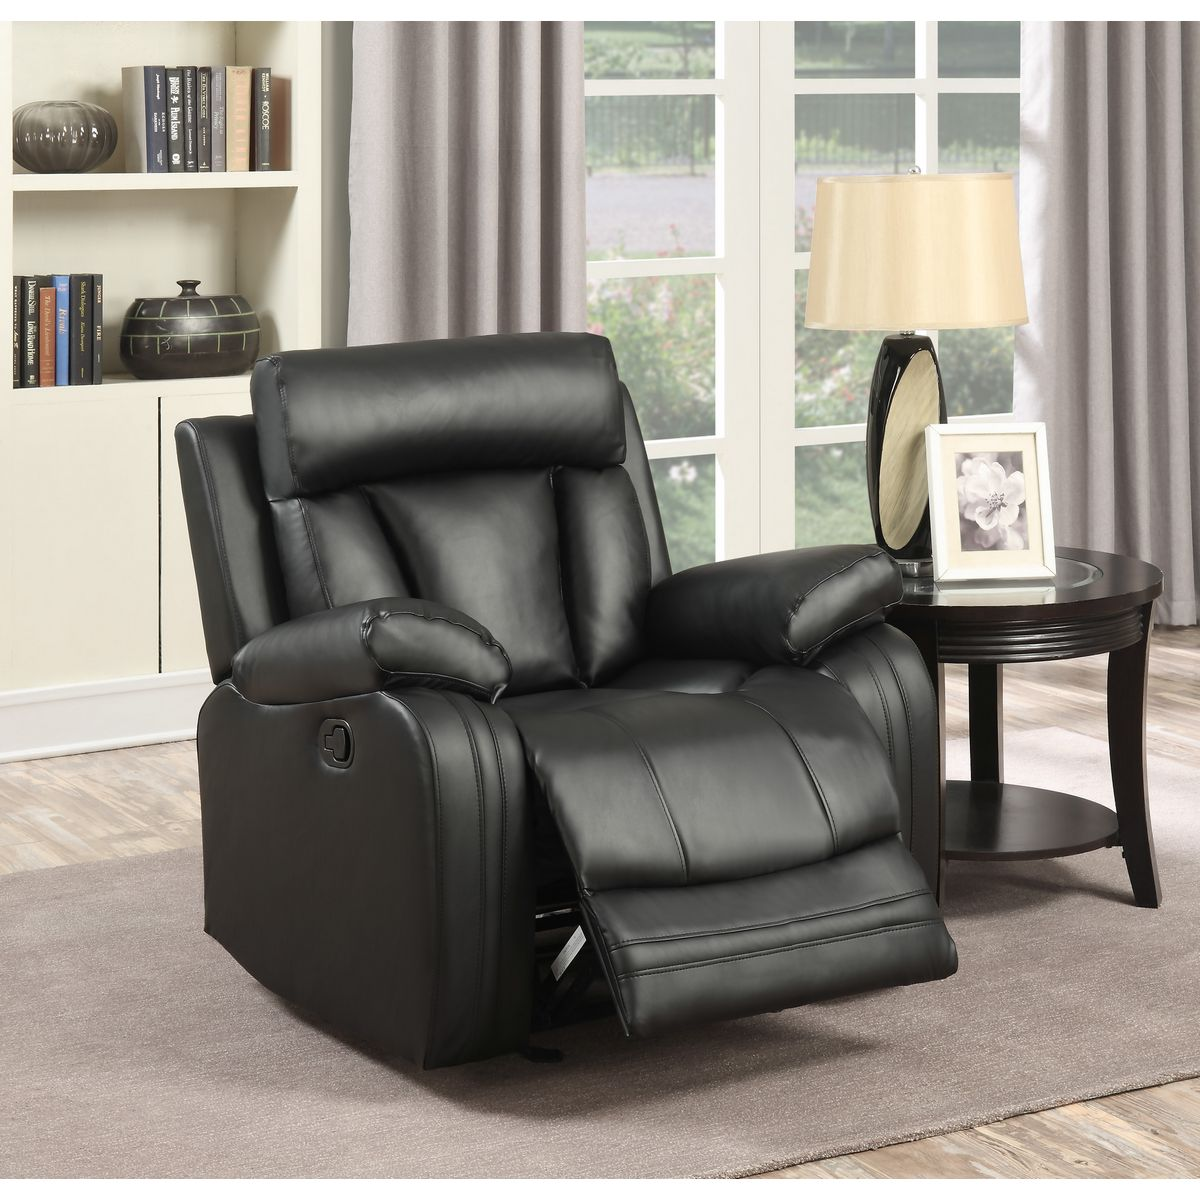 Meridian Furniture 645bl C Avery Black Leather Glider Recliner